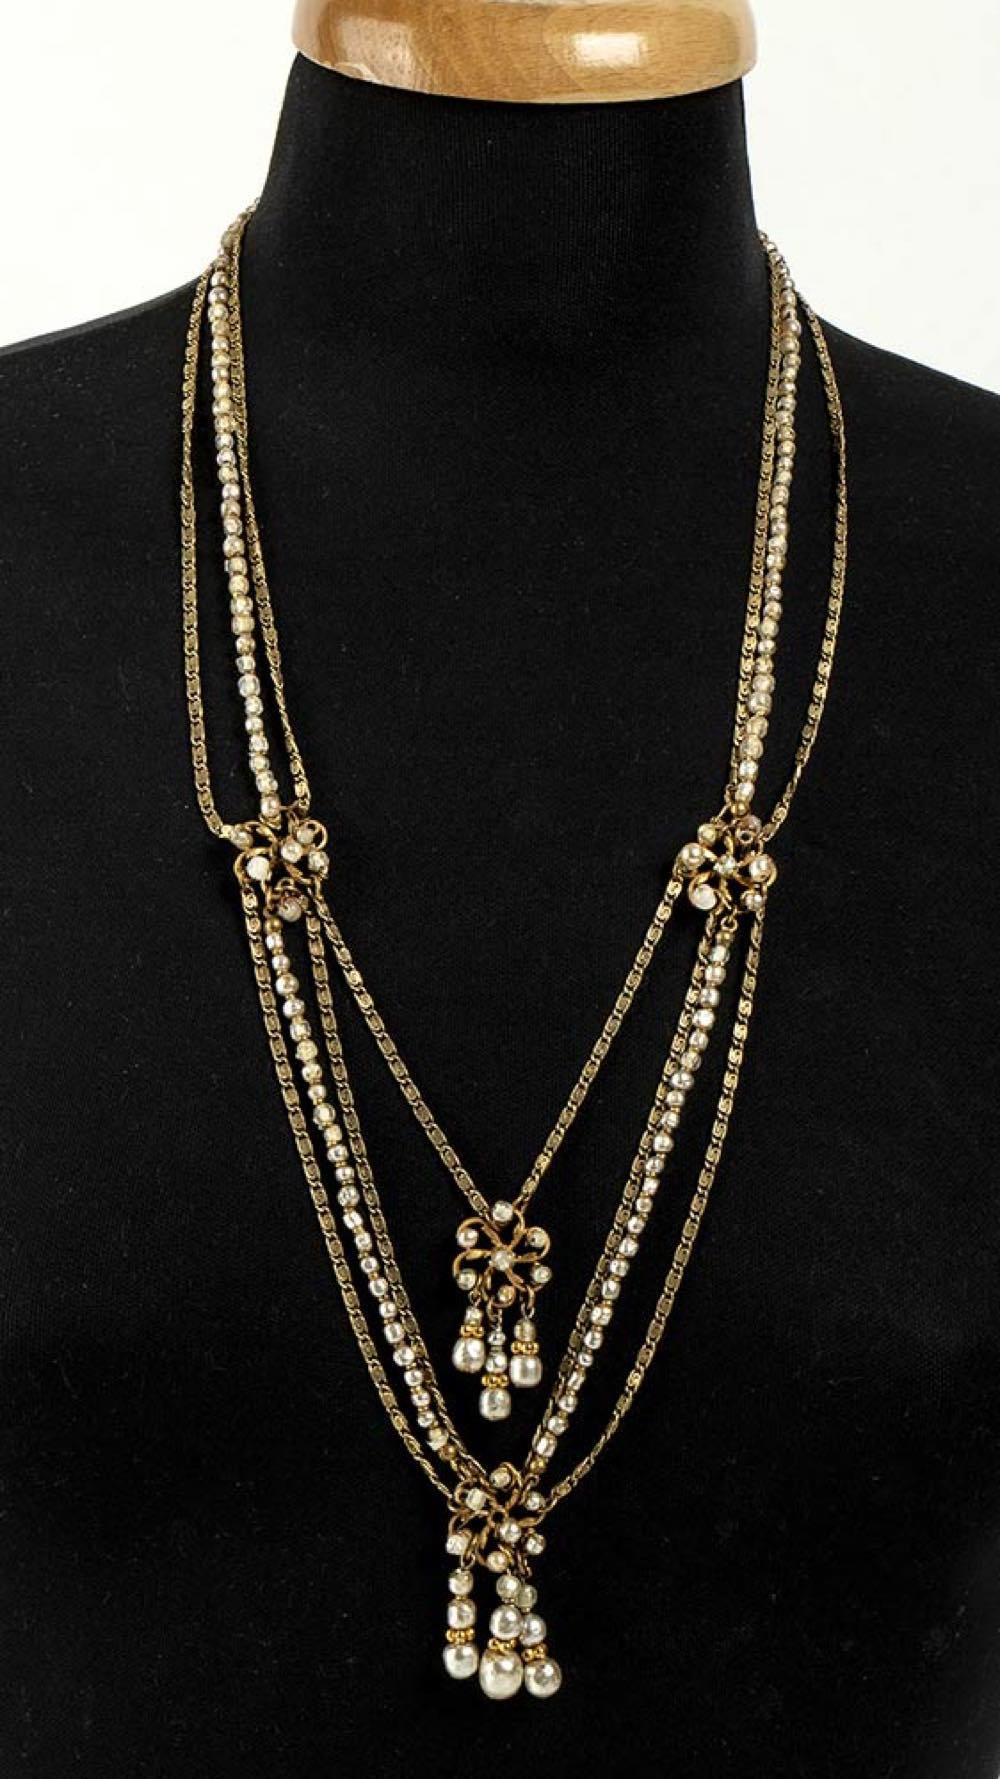 MIRIAM HASKELL - GILDED METAL NECKLACE - 40s